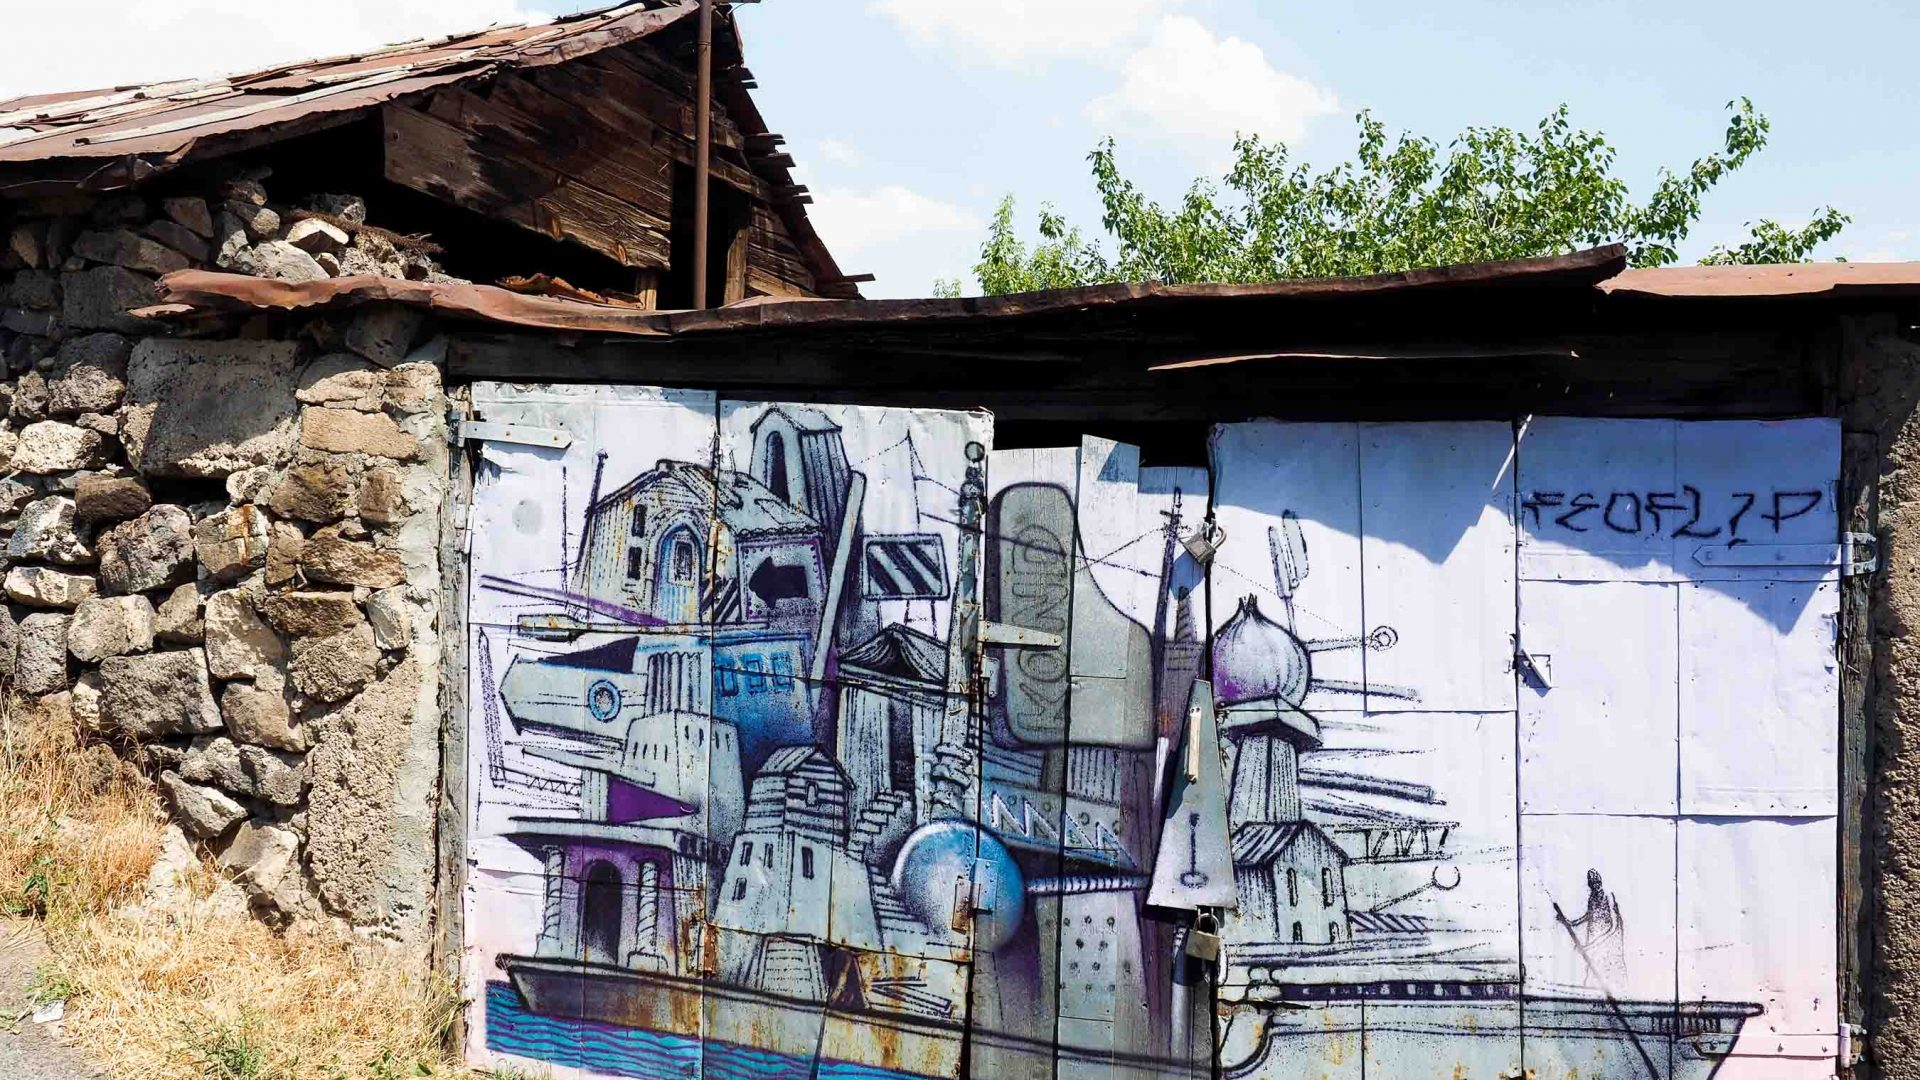 The wall of a home with street art on it.